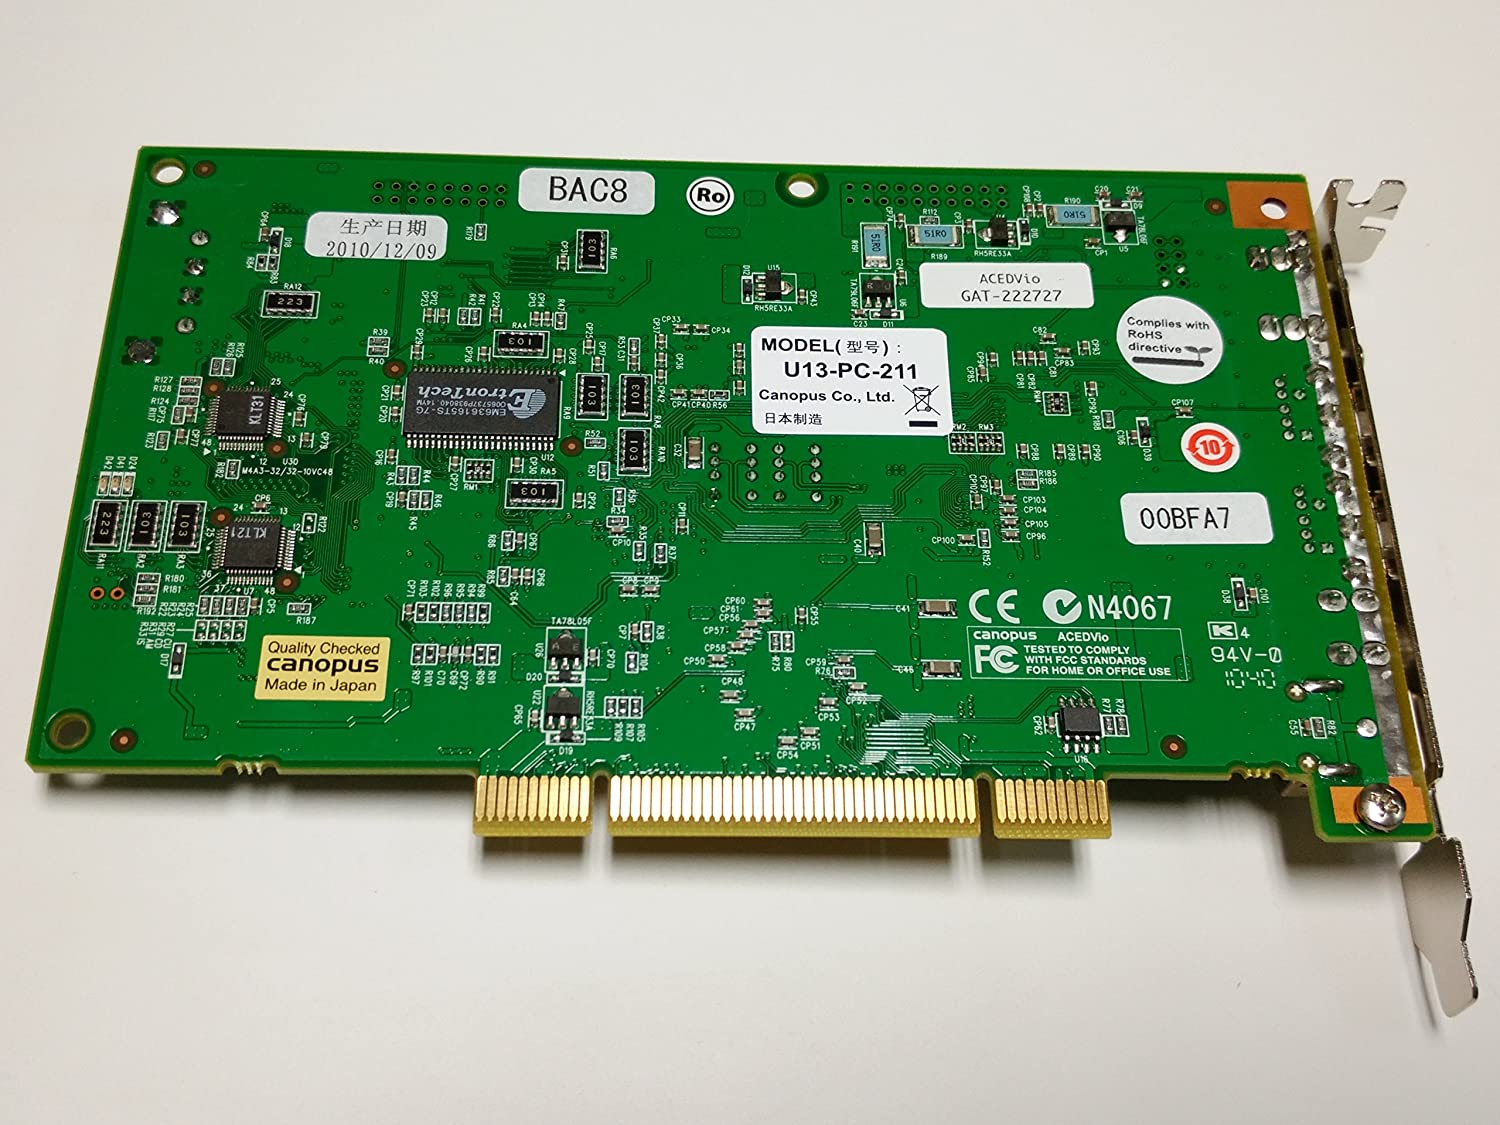 Amazon.com: Grass Valley/Canopus Acedvio OHCI Firewire Card without Editing  Software.: Everything Else